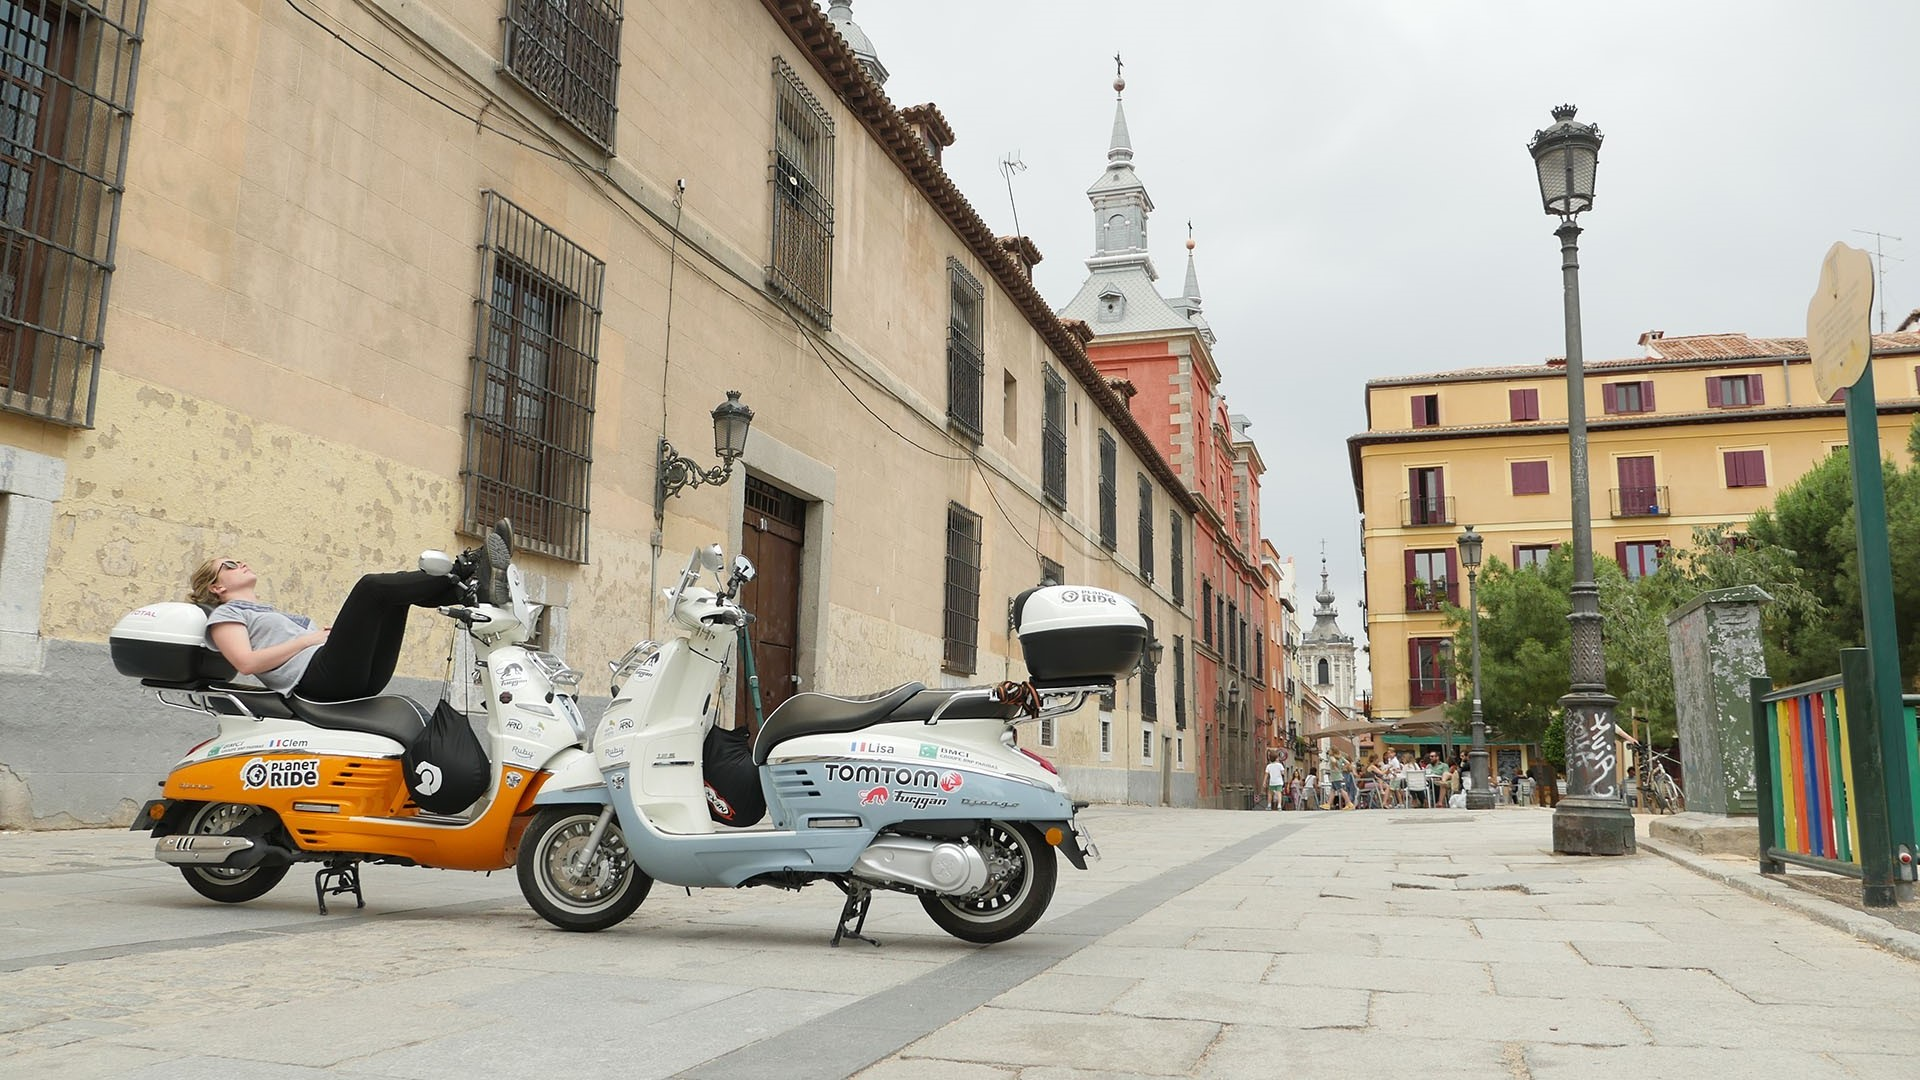 Clémence and Lisa have traveled Madrid, the beautiful Spanish capital on the handlebars of their Django scooter. A city trip made of encounters, architectural and gastronomic discoveries. A nice new step to their travel book